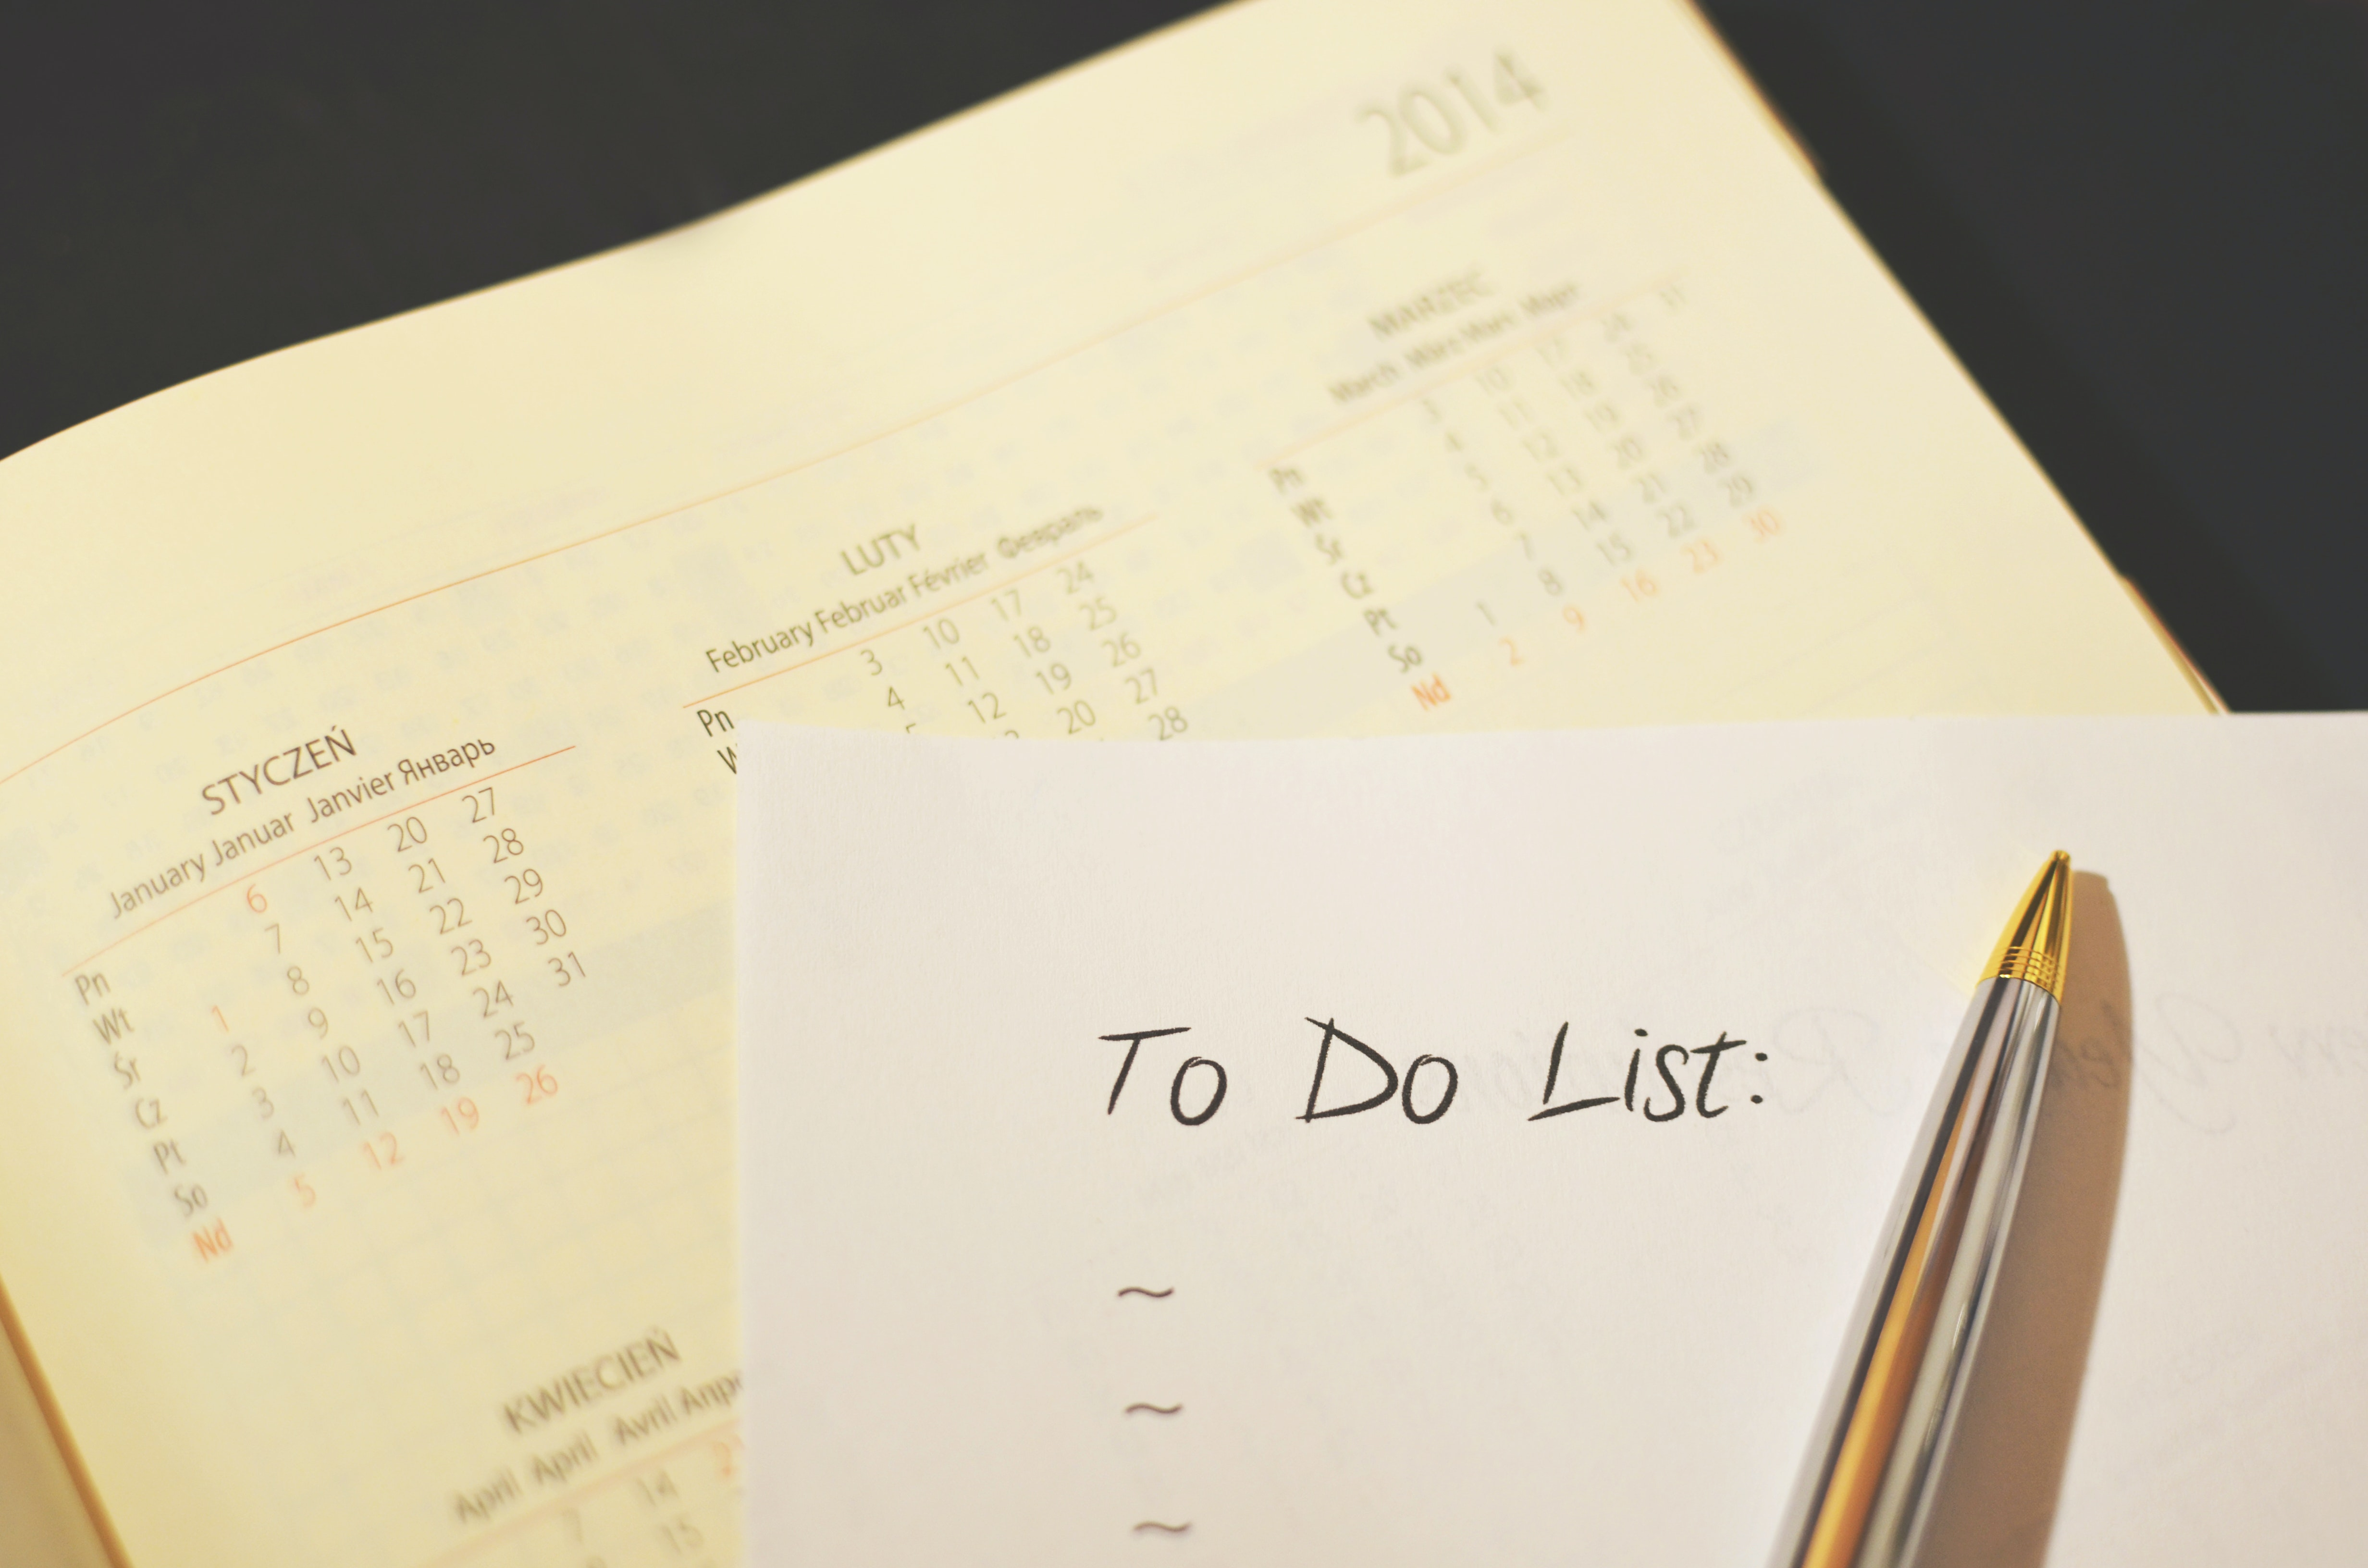 pen-calendar-to-do-checklist-3243